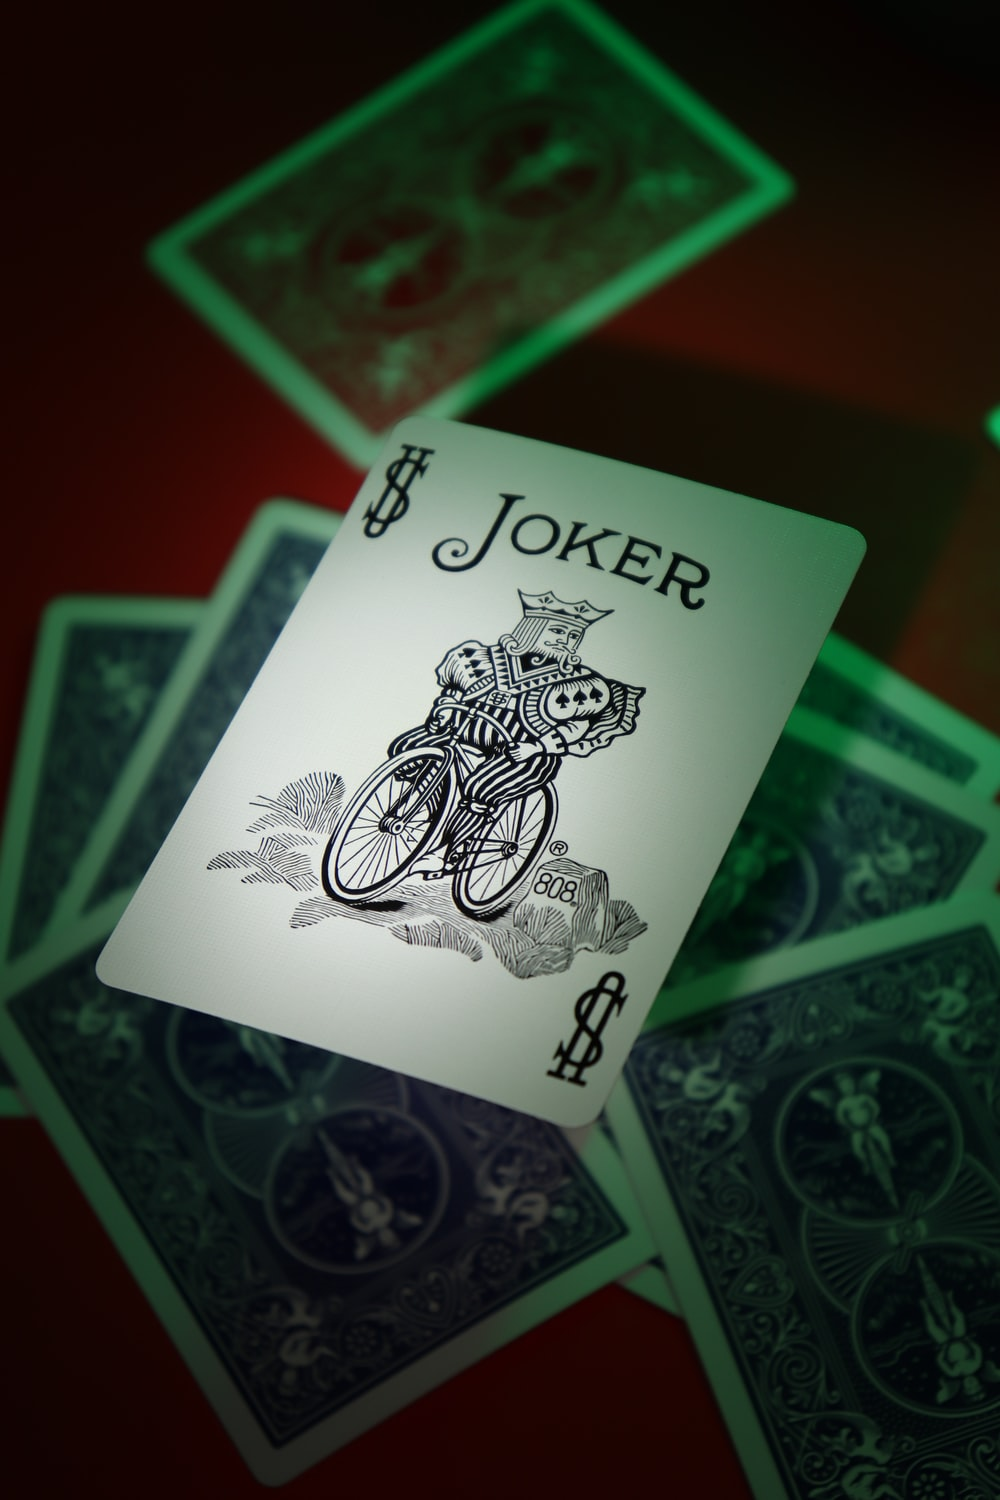 joker playing card on playing cards